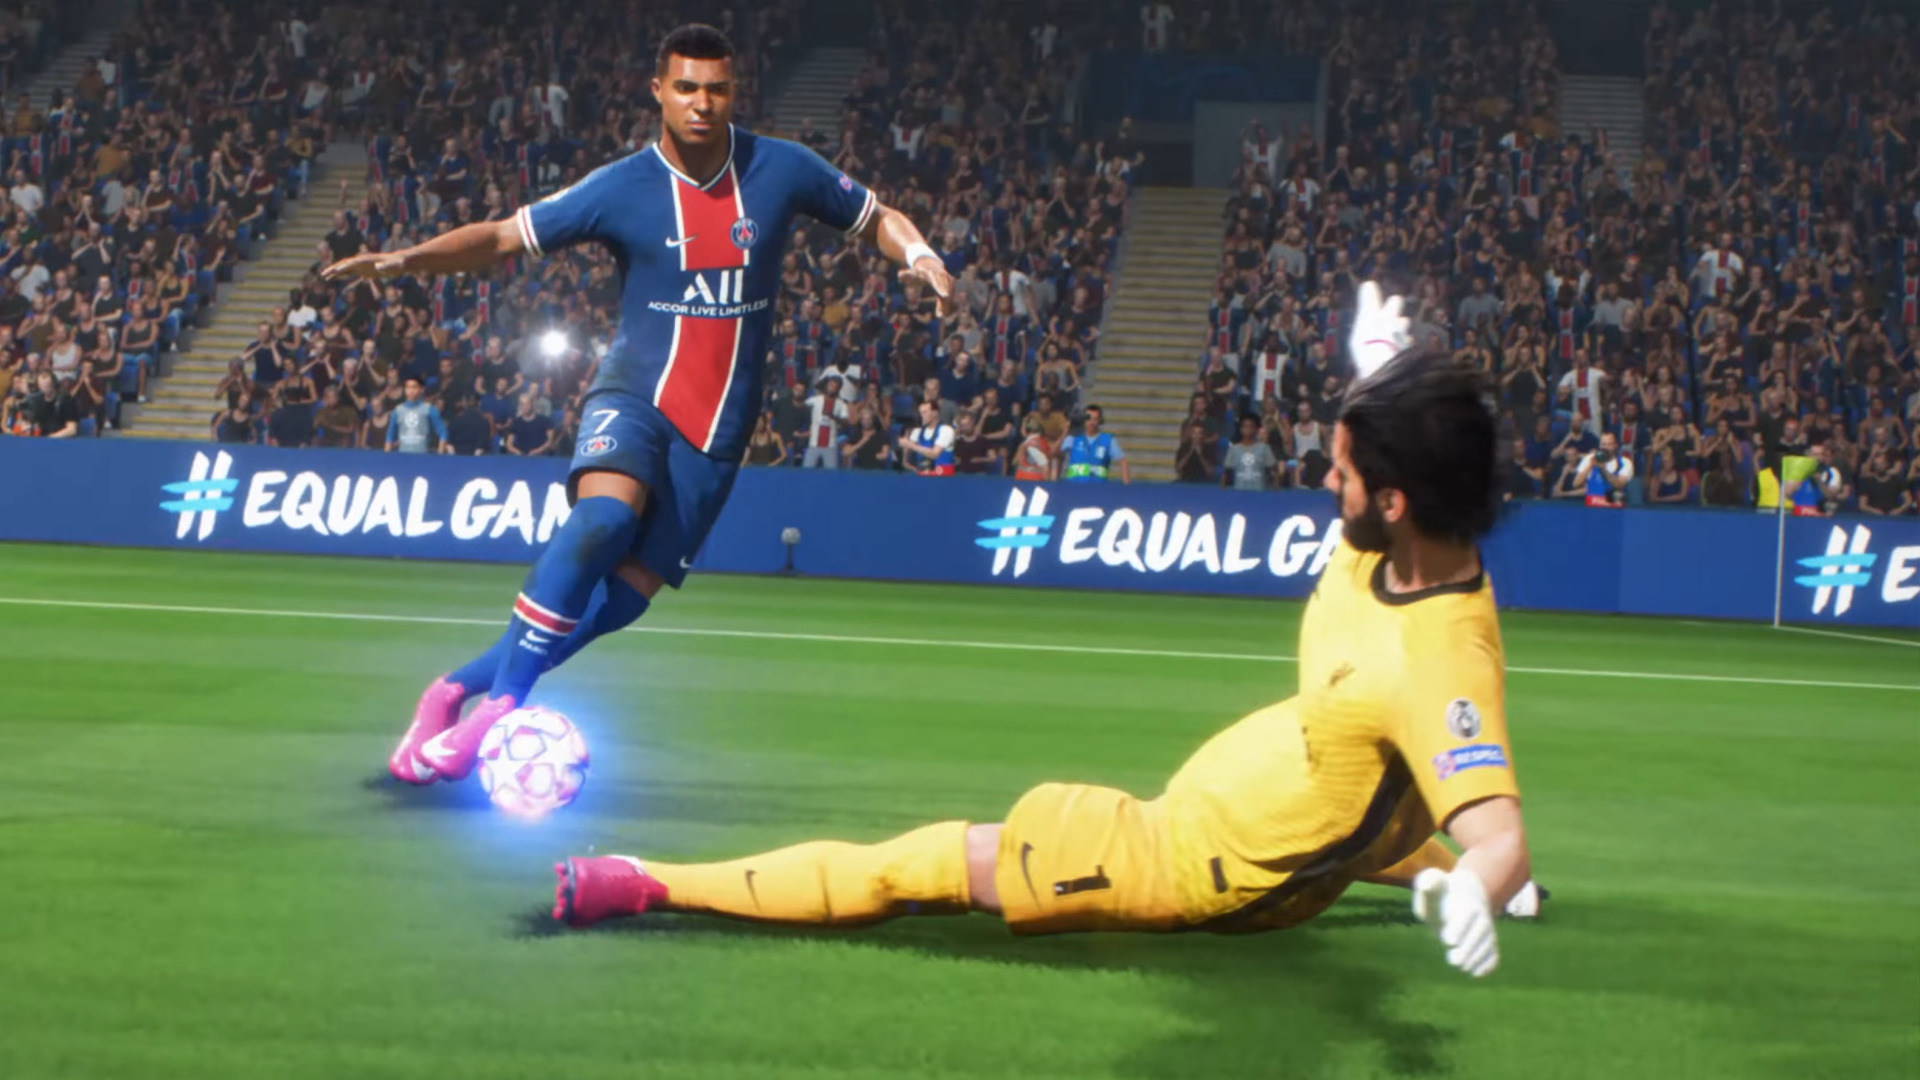 Electronic Arts, Fußball, Fifa 21